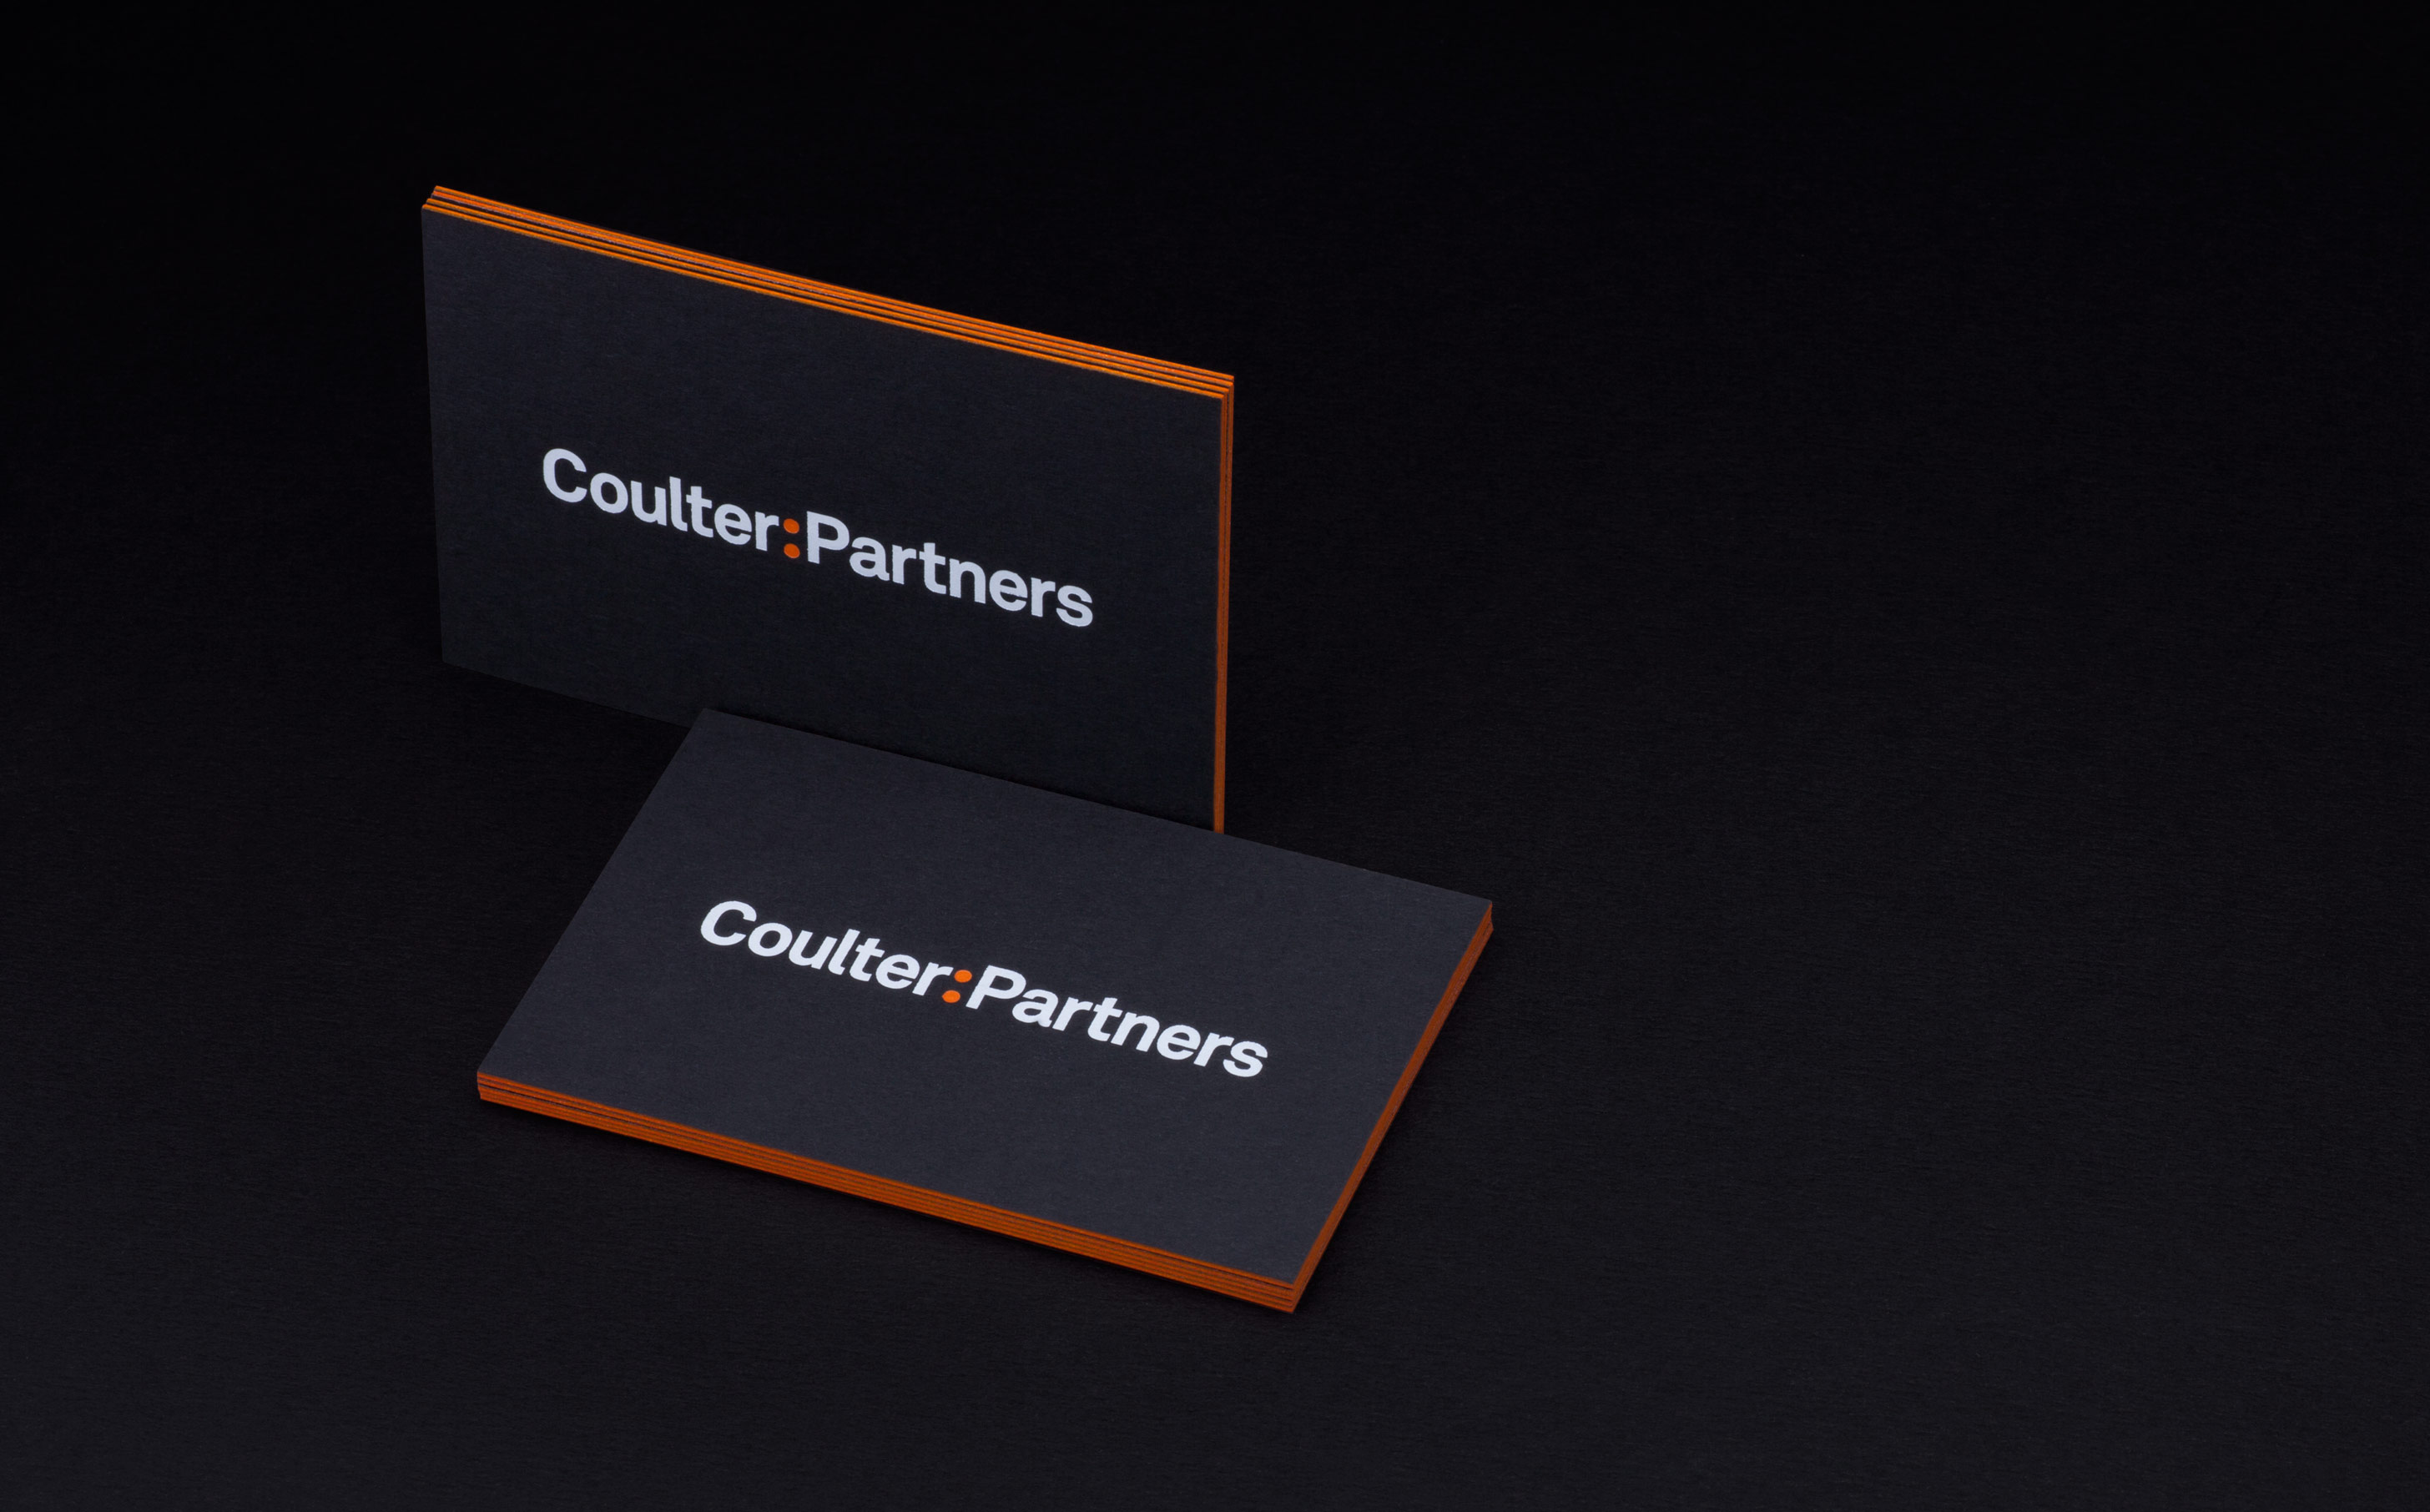 business-card-design-coulter-partners-01